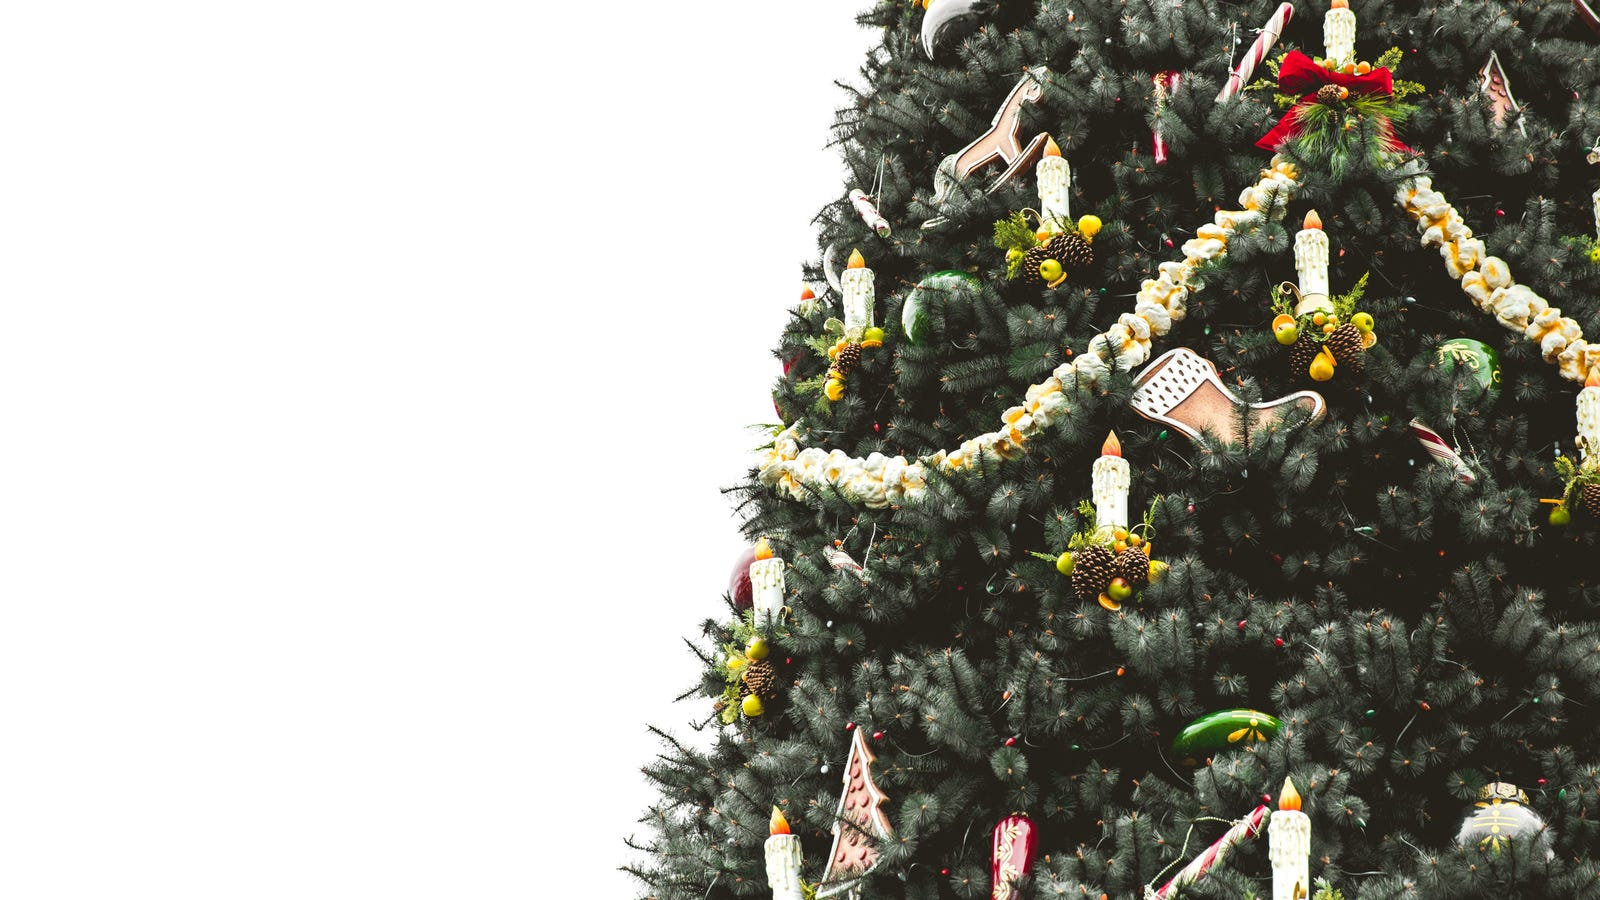 How to Keep Your Christmas Tree Alive Through the Holidays